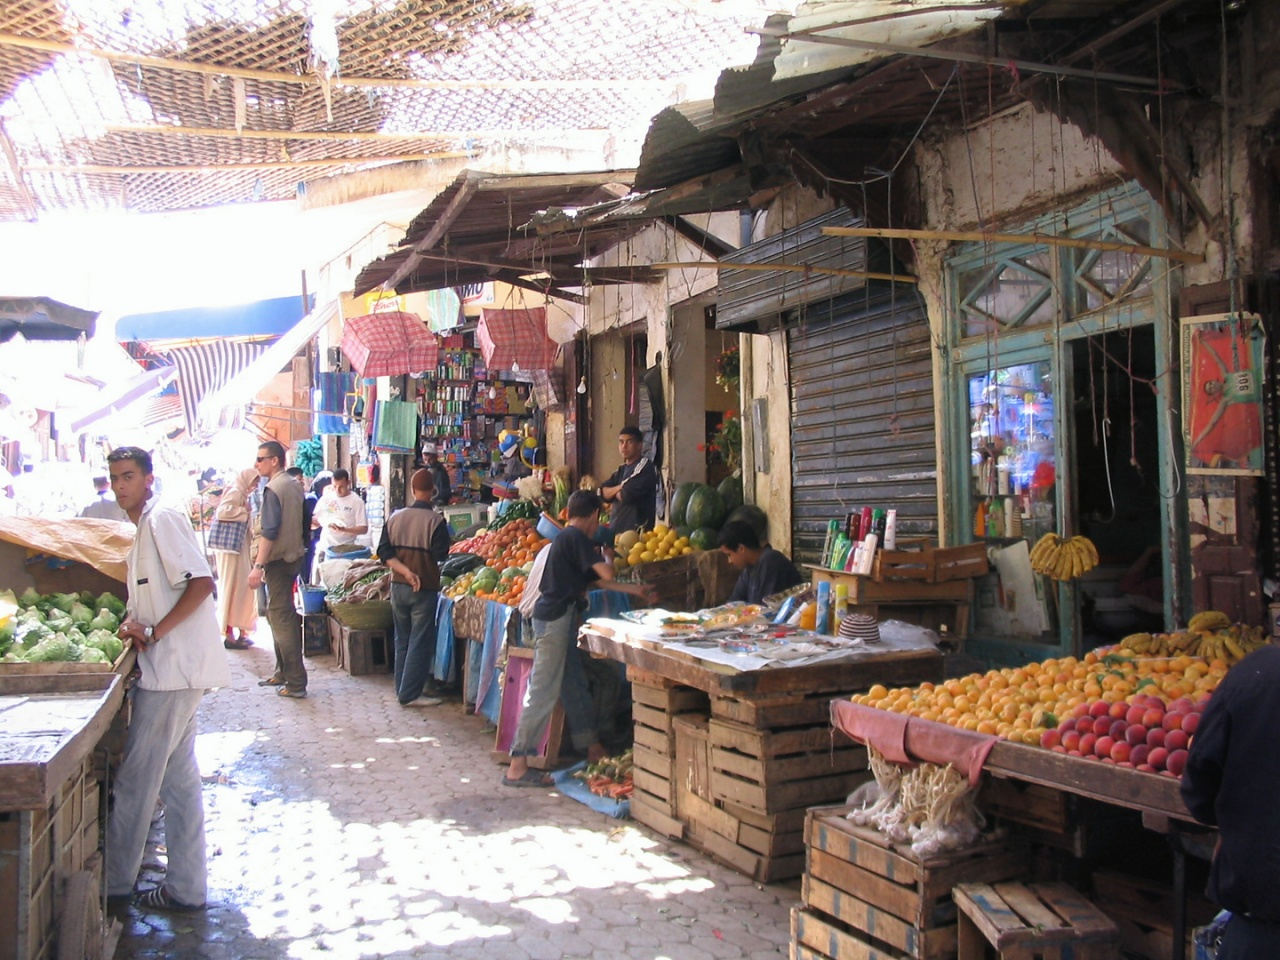 20040529_1619-Soukh_in_Fes_03